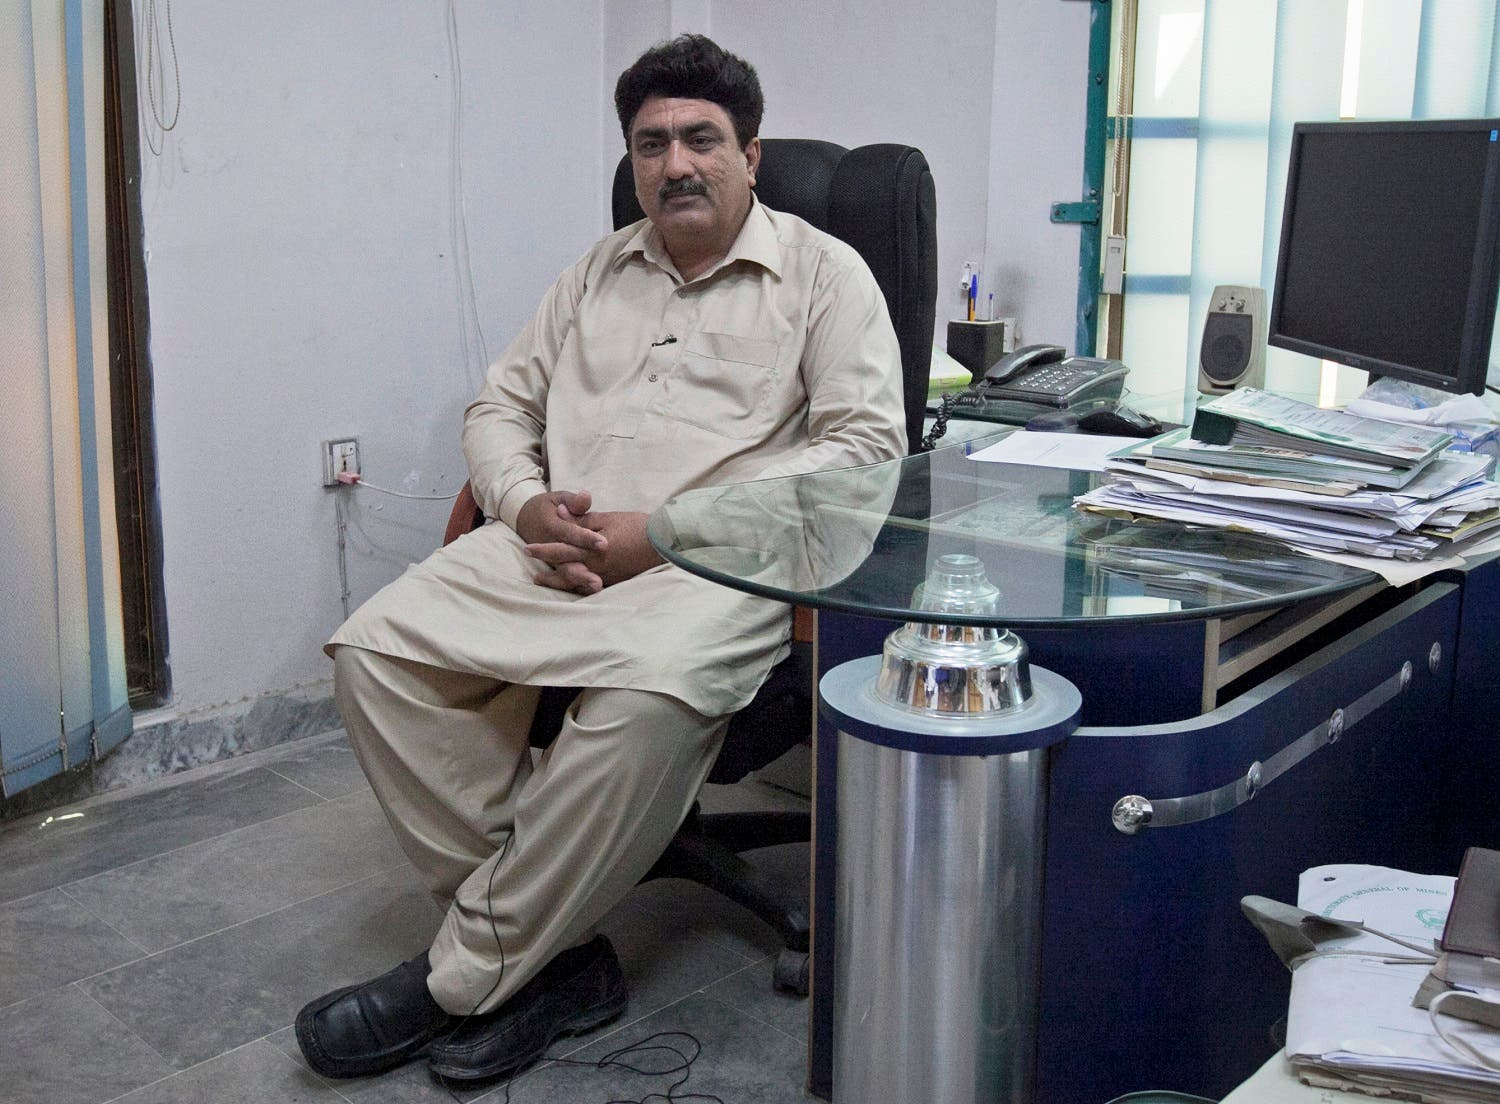 Jamil Afridi, brother of Pakistani doctor Shakil Afridi, gestures during an interview with Reuters in Peshawar June 13, 2012. (Reuters)